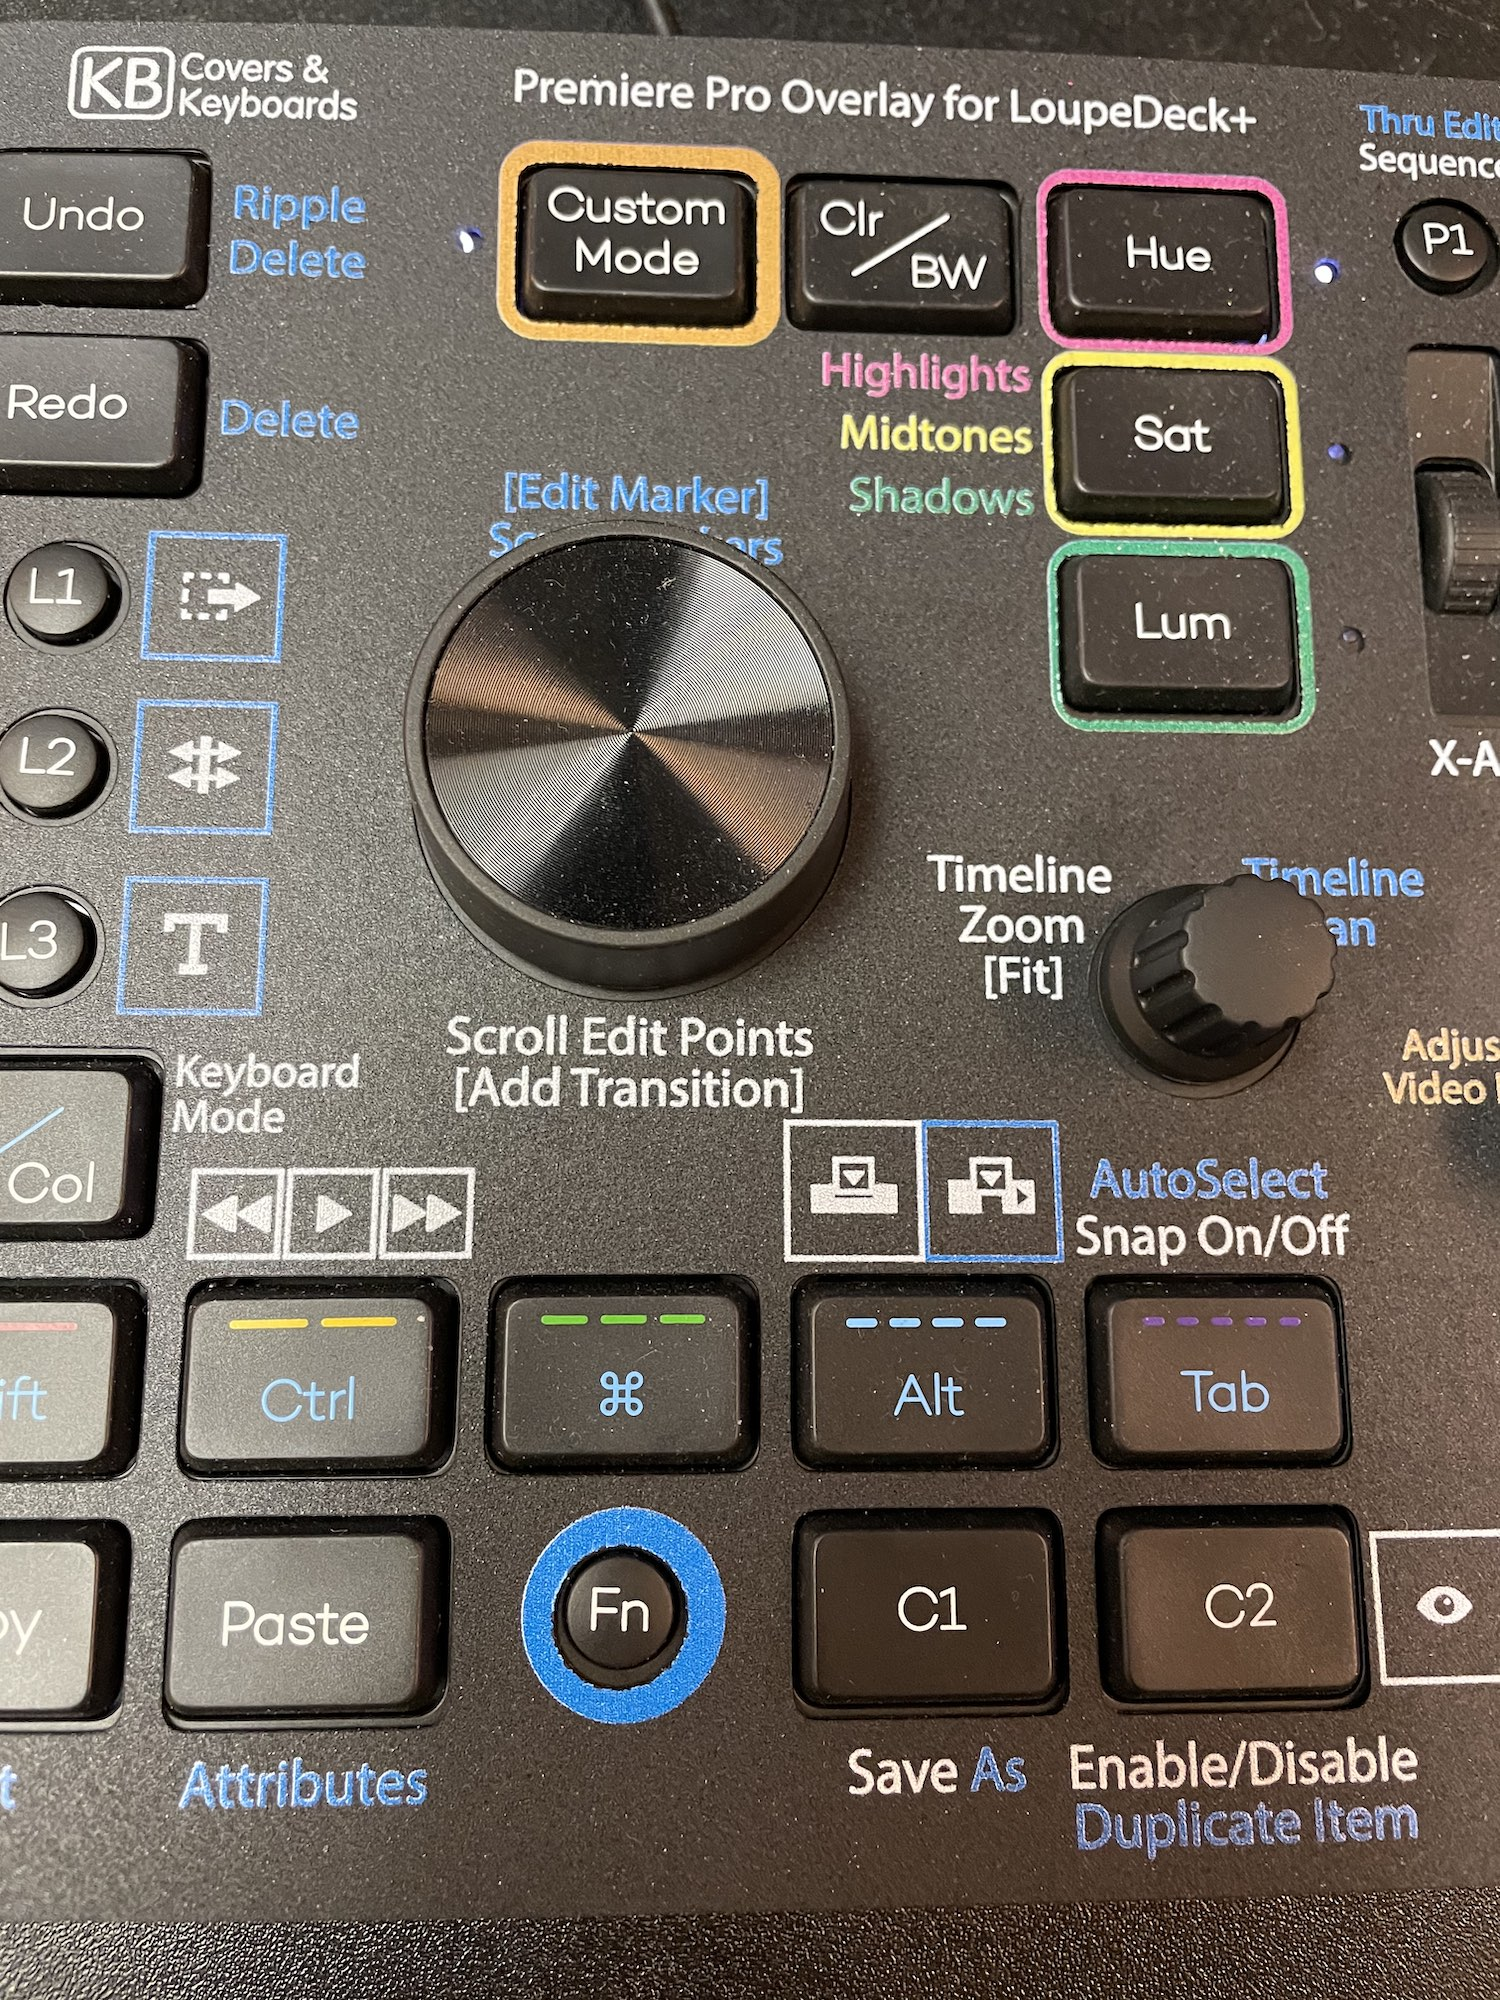 Custom video editing overlays for the Loupedeck+ control surface 4